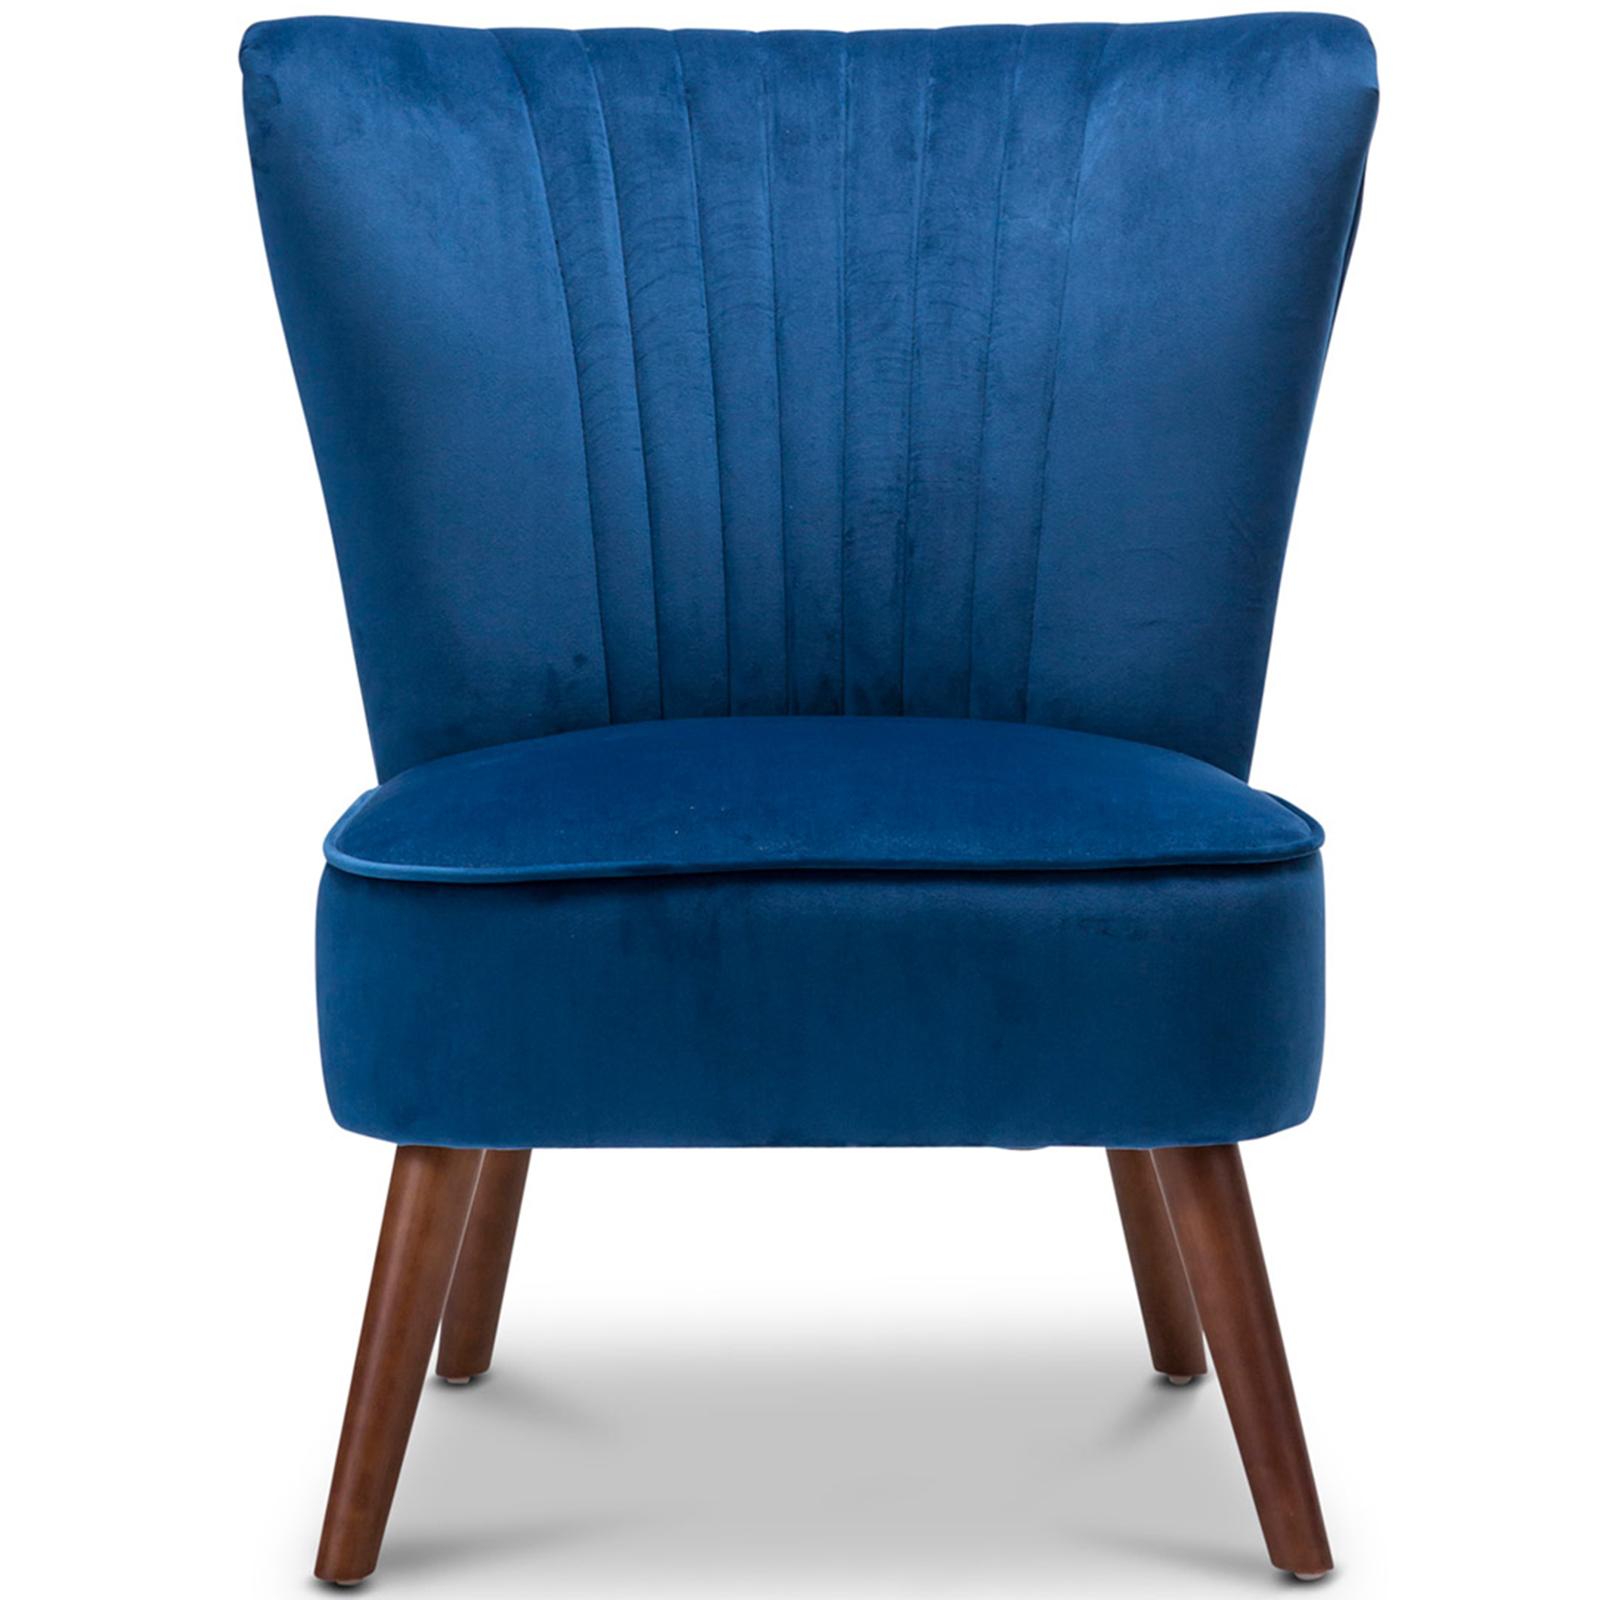 New ayana velvet slipper accent chair continental designs for New chair design